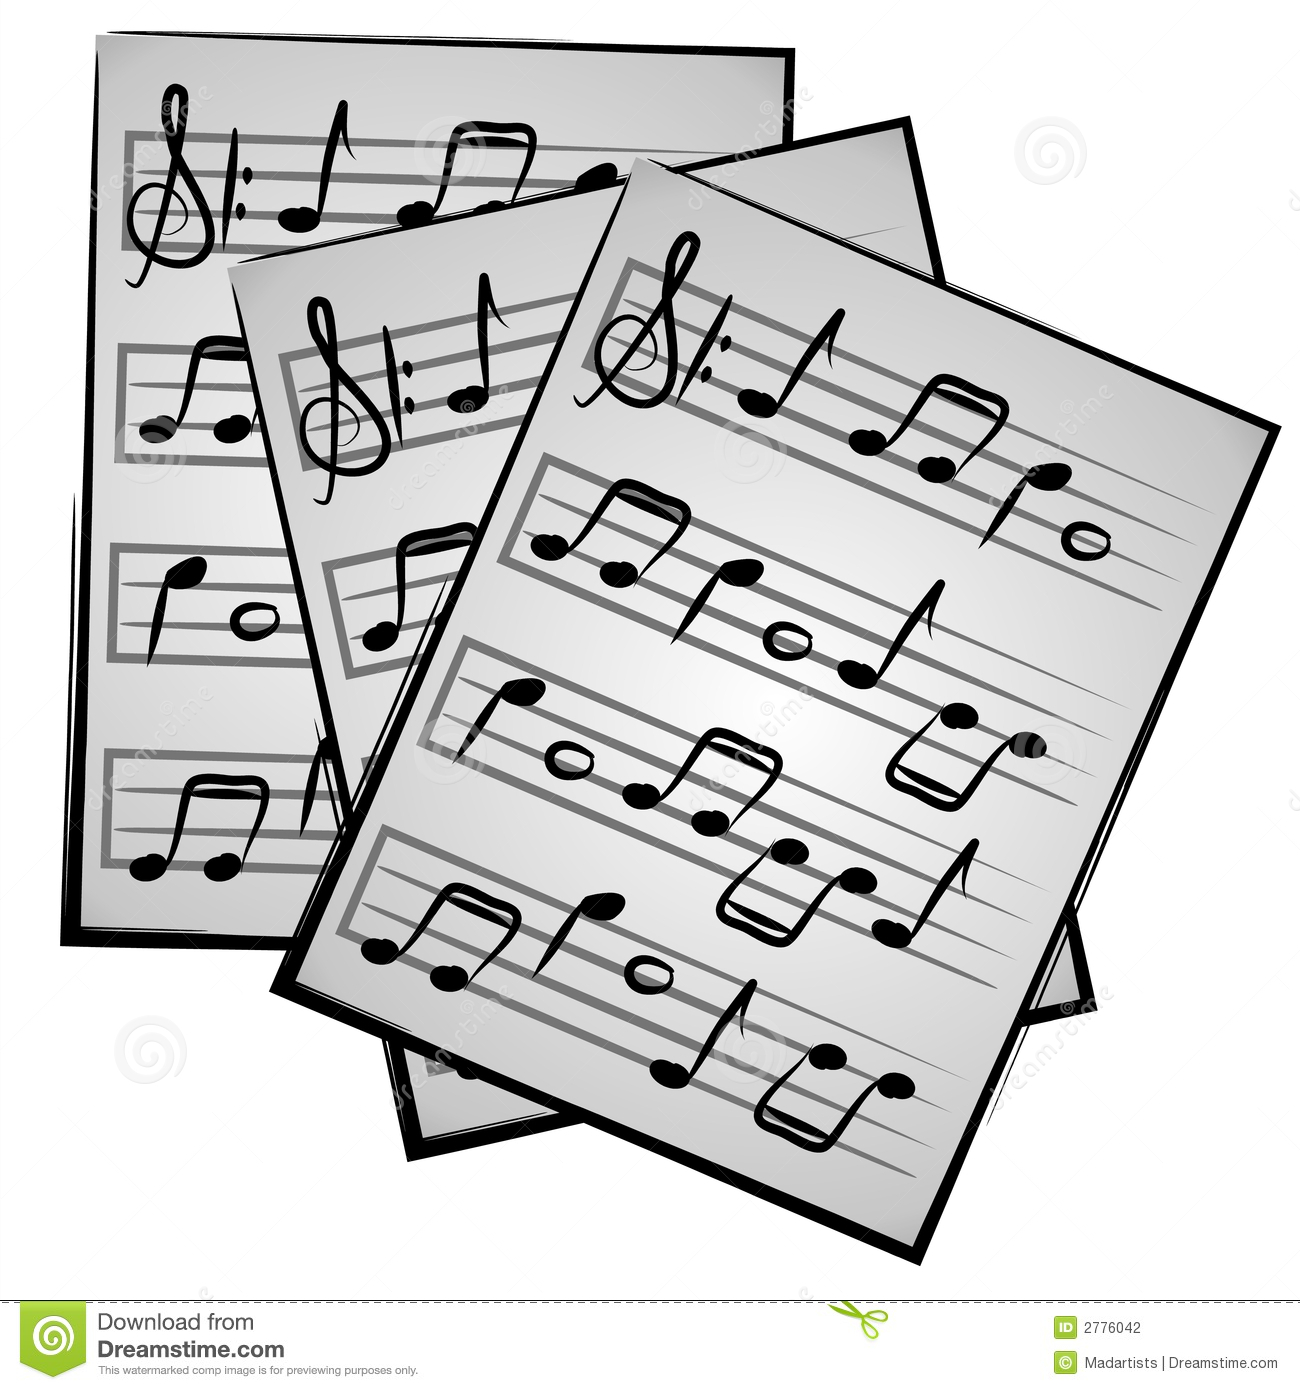 Music Notes on Paper Clipart - Sheet Music Clip Art